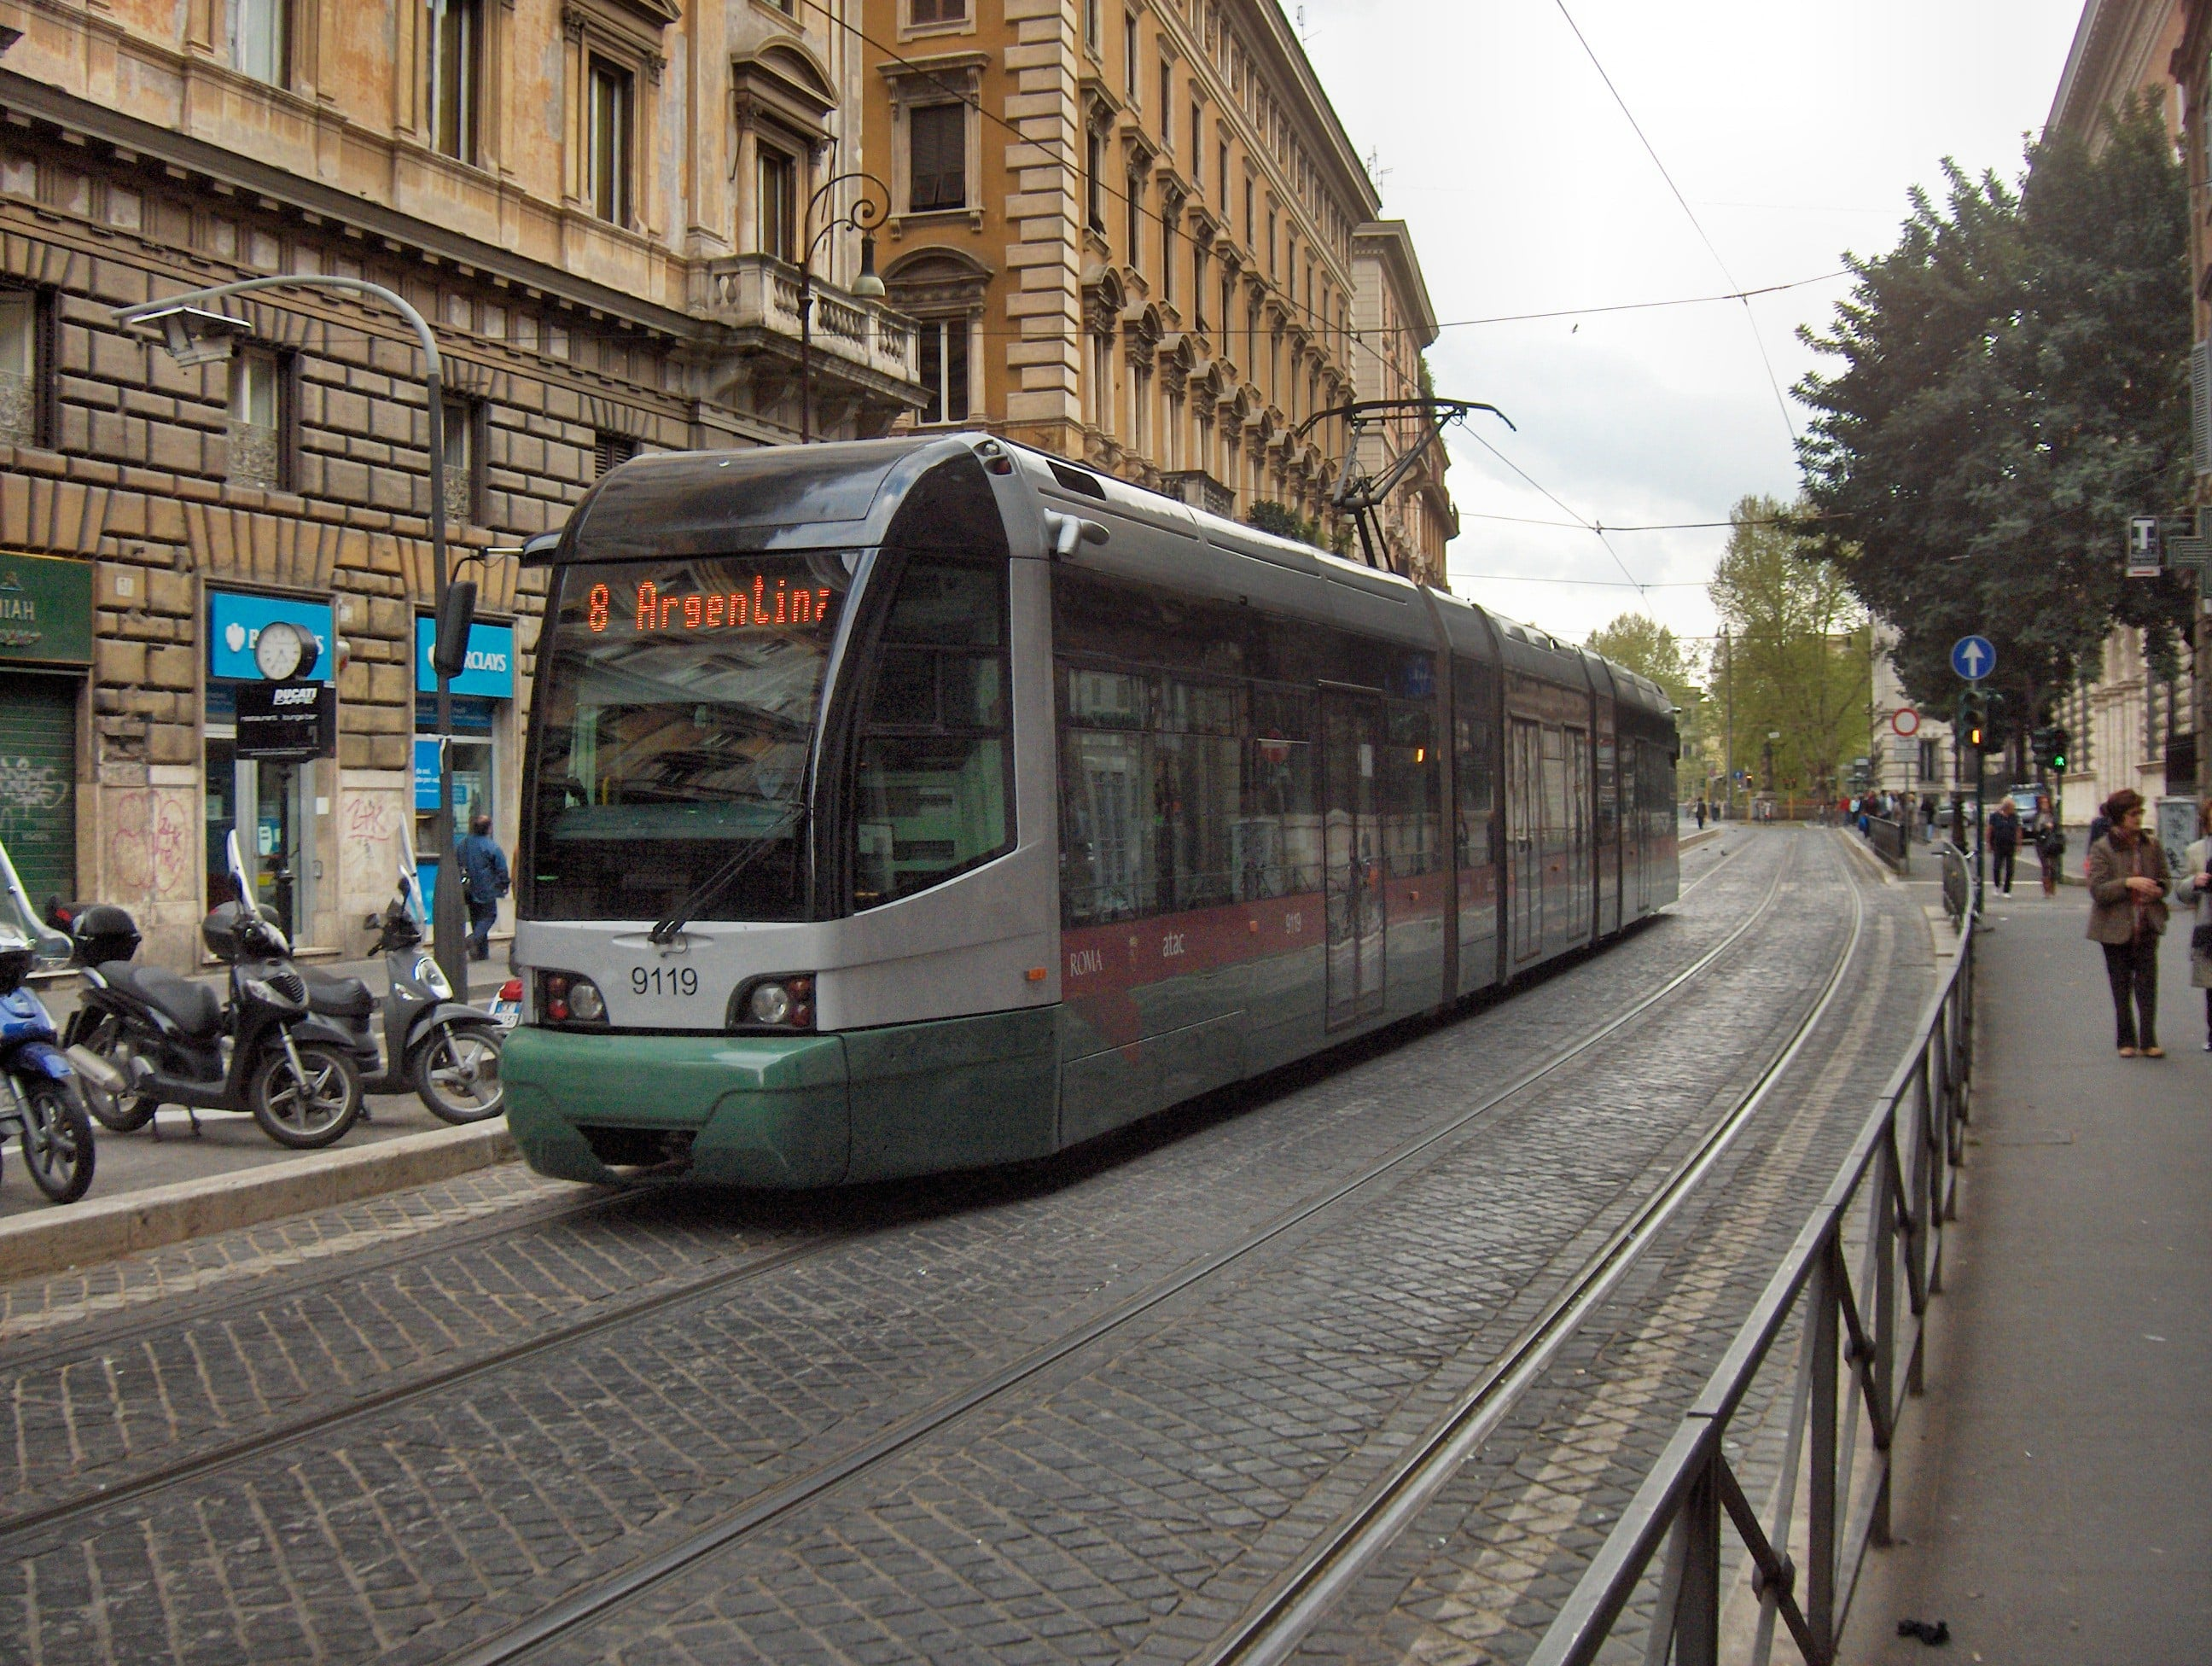 Rome transport strike planned for Monday, February 3, 2020